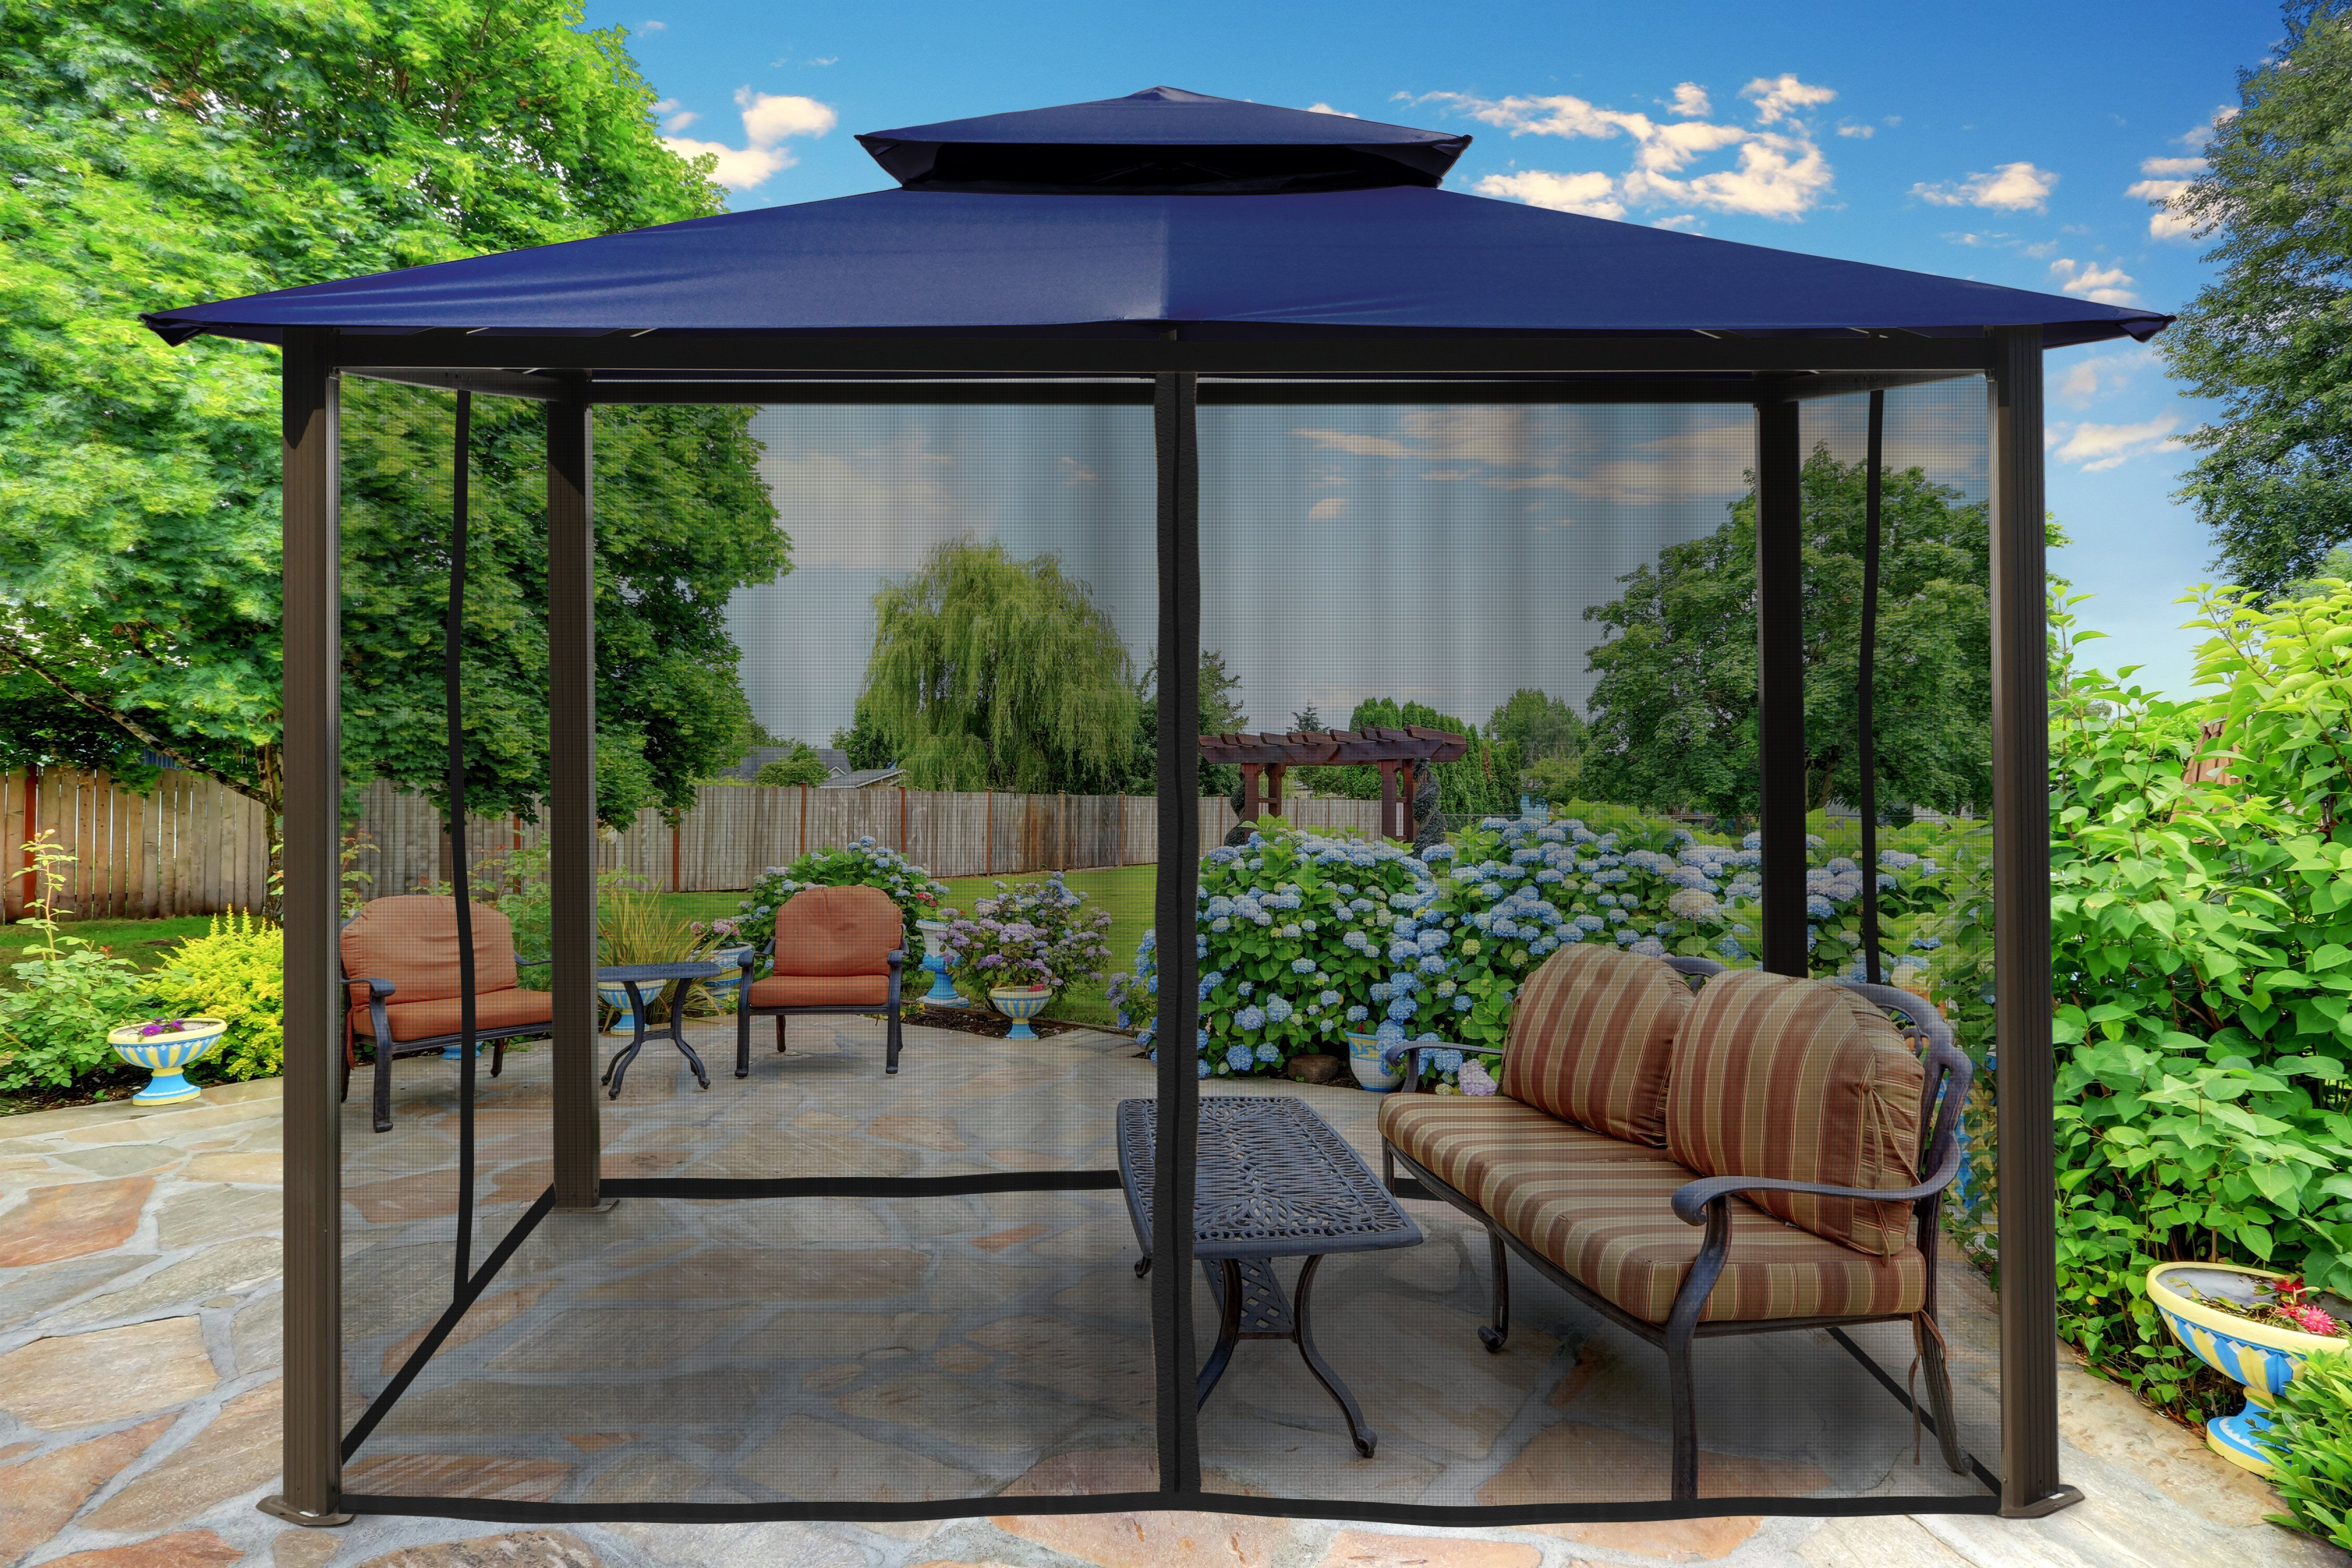 Paragon Outdoor Barcelona Gazebo With Navy Roof And Mosquito Netting Size 10 X 12 In 2020 Gazebo Backyard Structures Outdoor